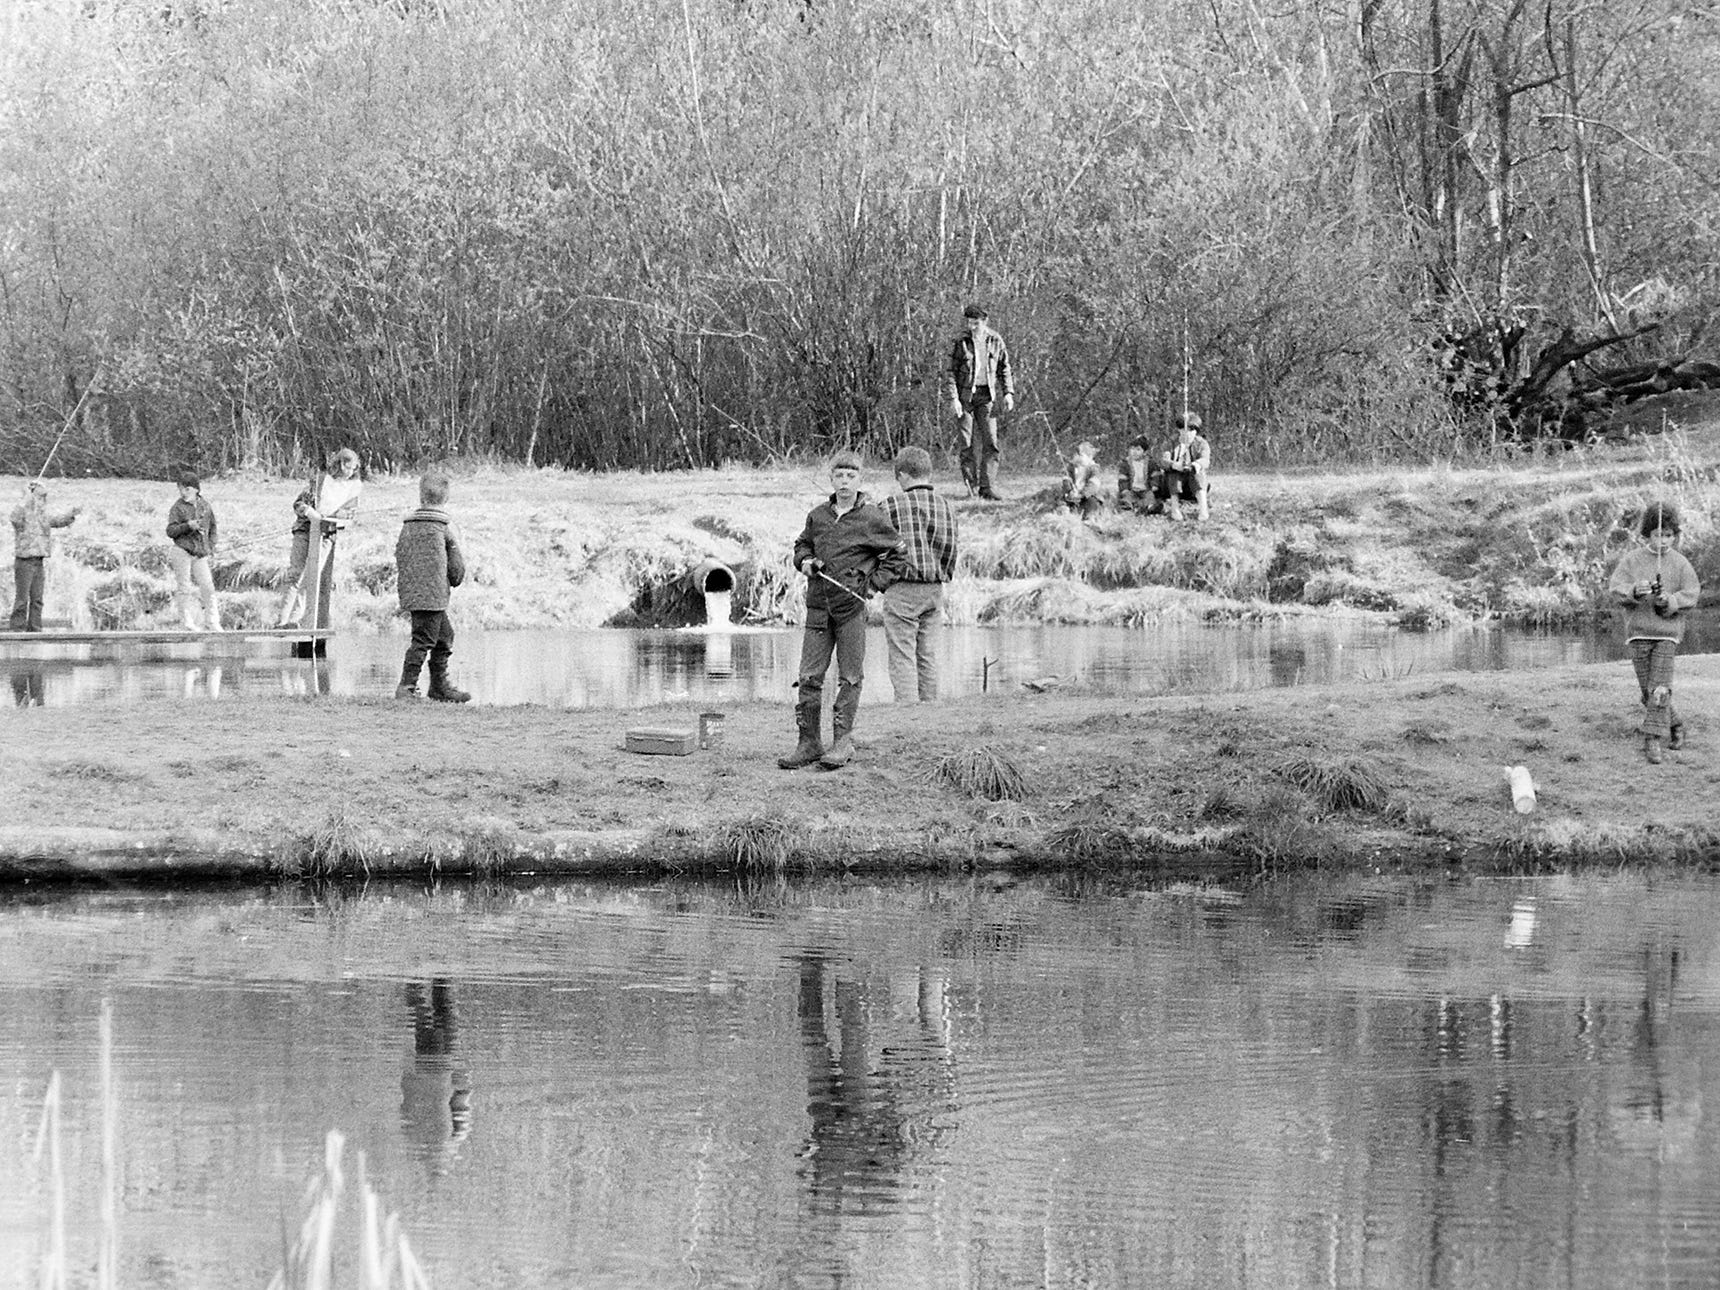 04/28/70